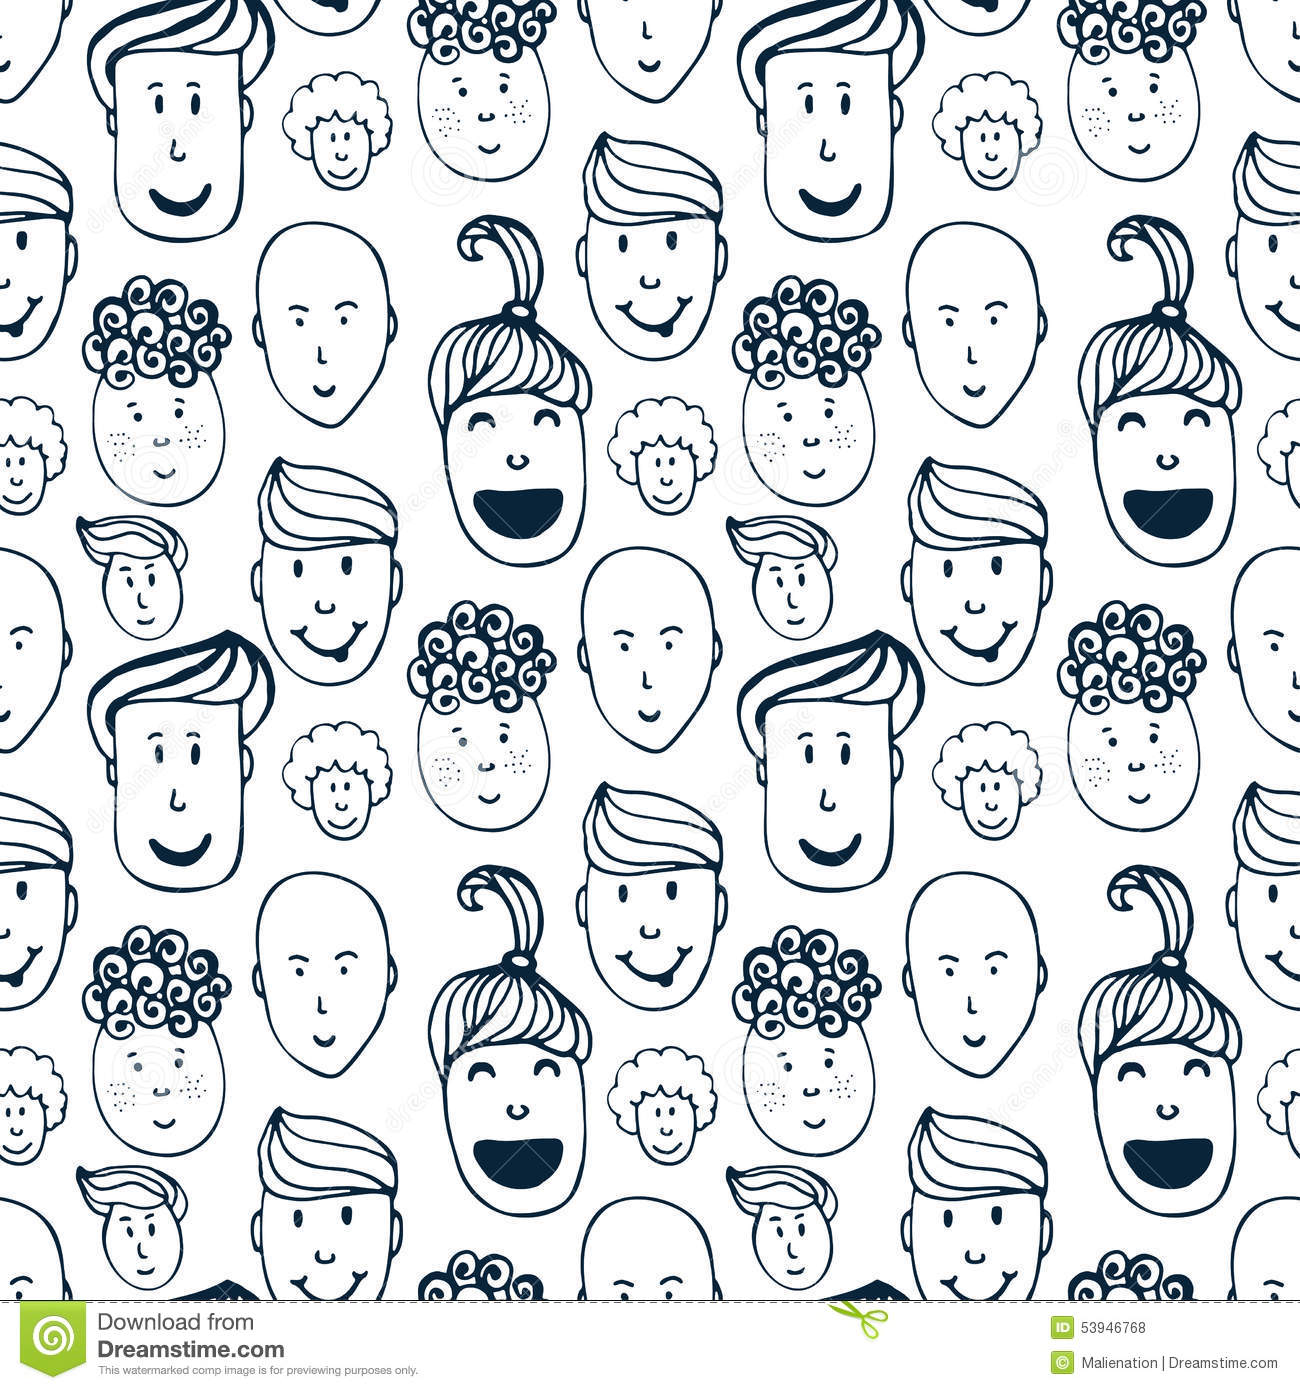 Cute Cartoon Faces Wallpaper Hand Drawn Vector Seamless Pattern With Illustration Of